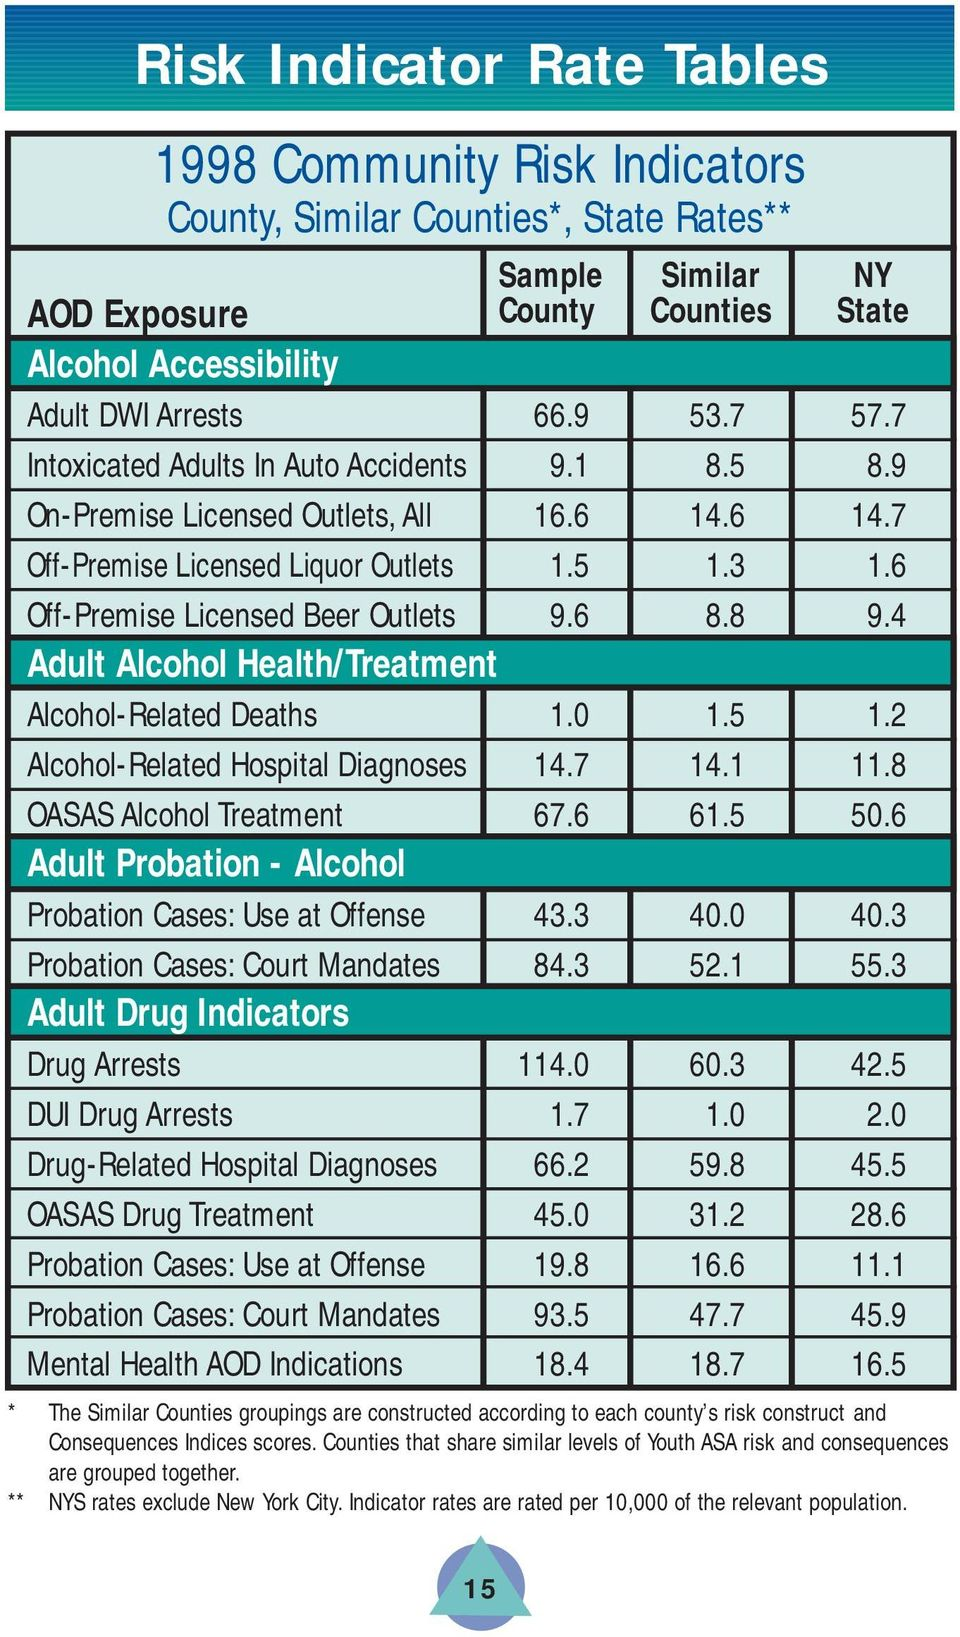 8 9.4 Adult Alcohol Health/Treatment Alcohol-Related Deaths 1.0 1.5 1.2 Alcohol-Related Hospital Diagnoses 14.7 14.1 11.8 OASAS Alcohol Treatment 67.6 61.5 50.